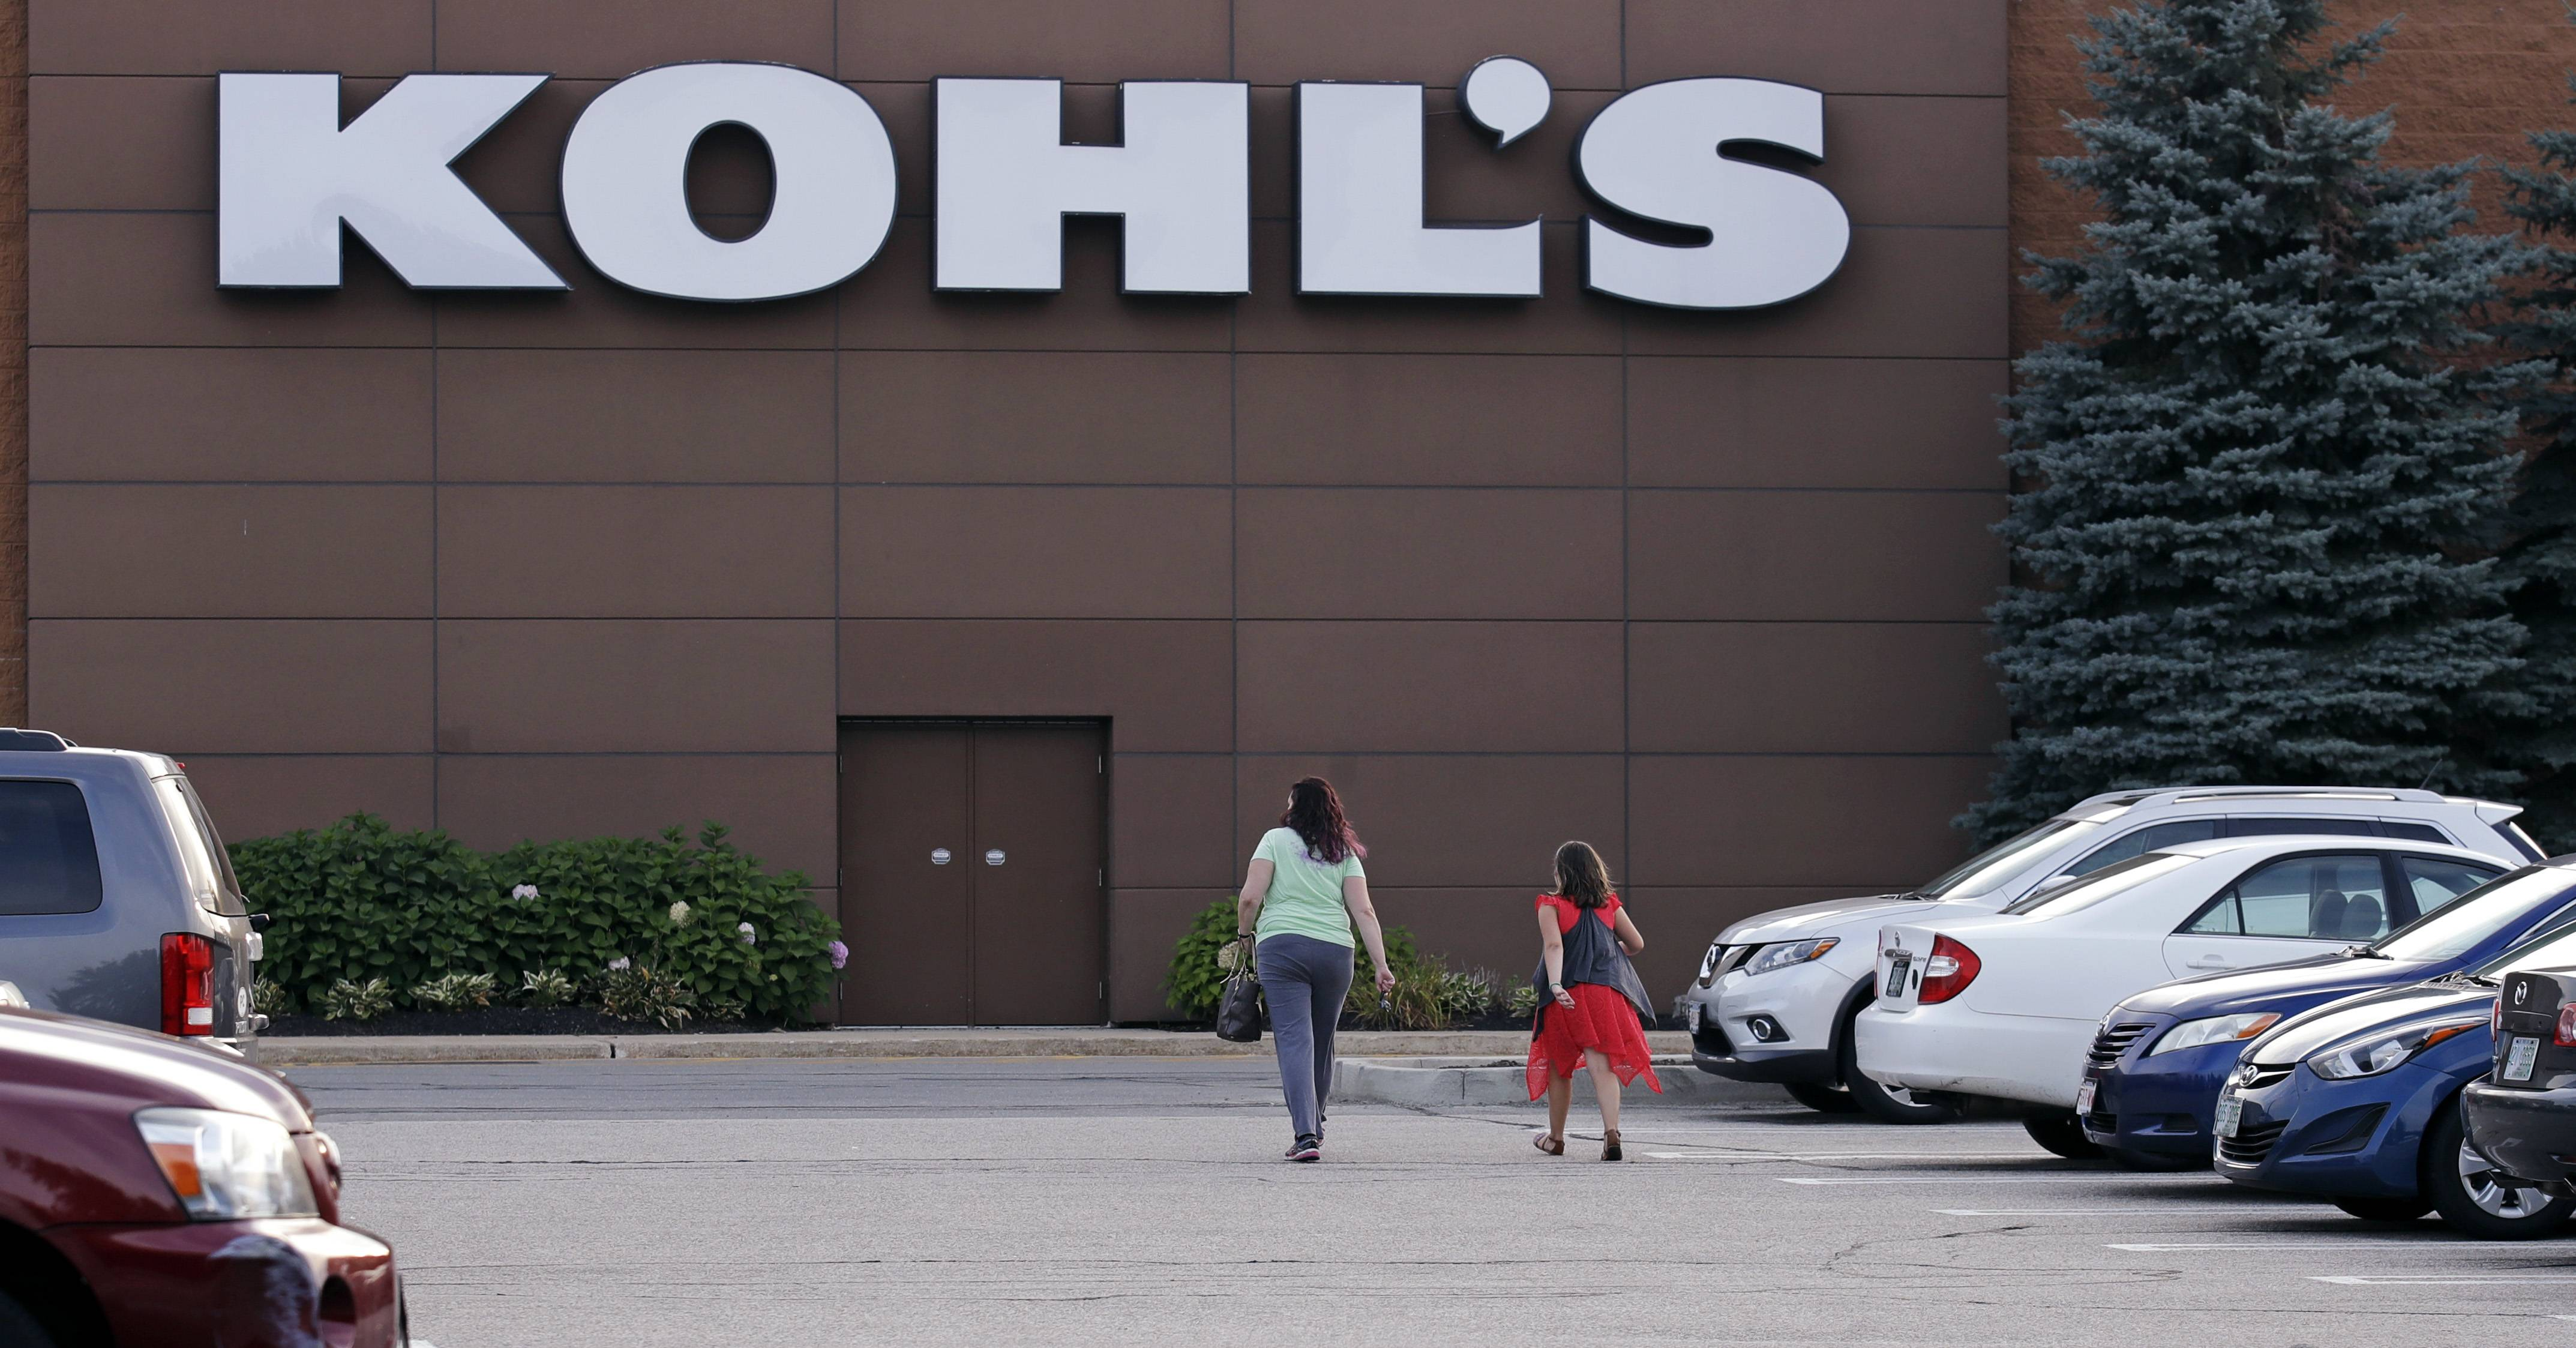 In this Tuesday, Aug. 22, 2017, photo, shoppers walk to a Kohl's retail store in Salem, N.H. Kohl's, which is opening some in-store Amazon shops, will start accepting returns for the online retailer at some of its stores in Los Angeles and Chicago starting in October 2017. (AP Photo/Charles Krupa)